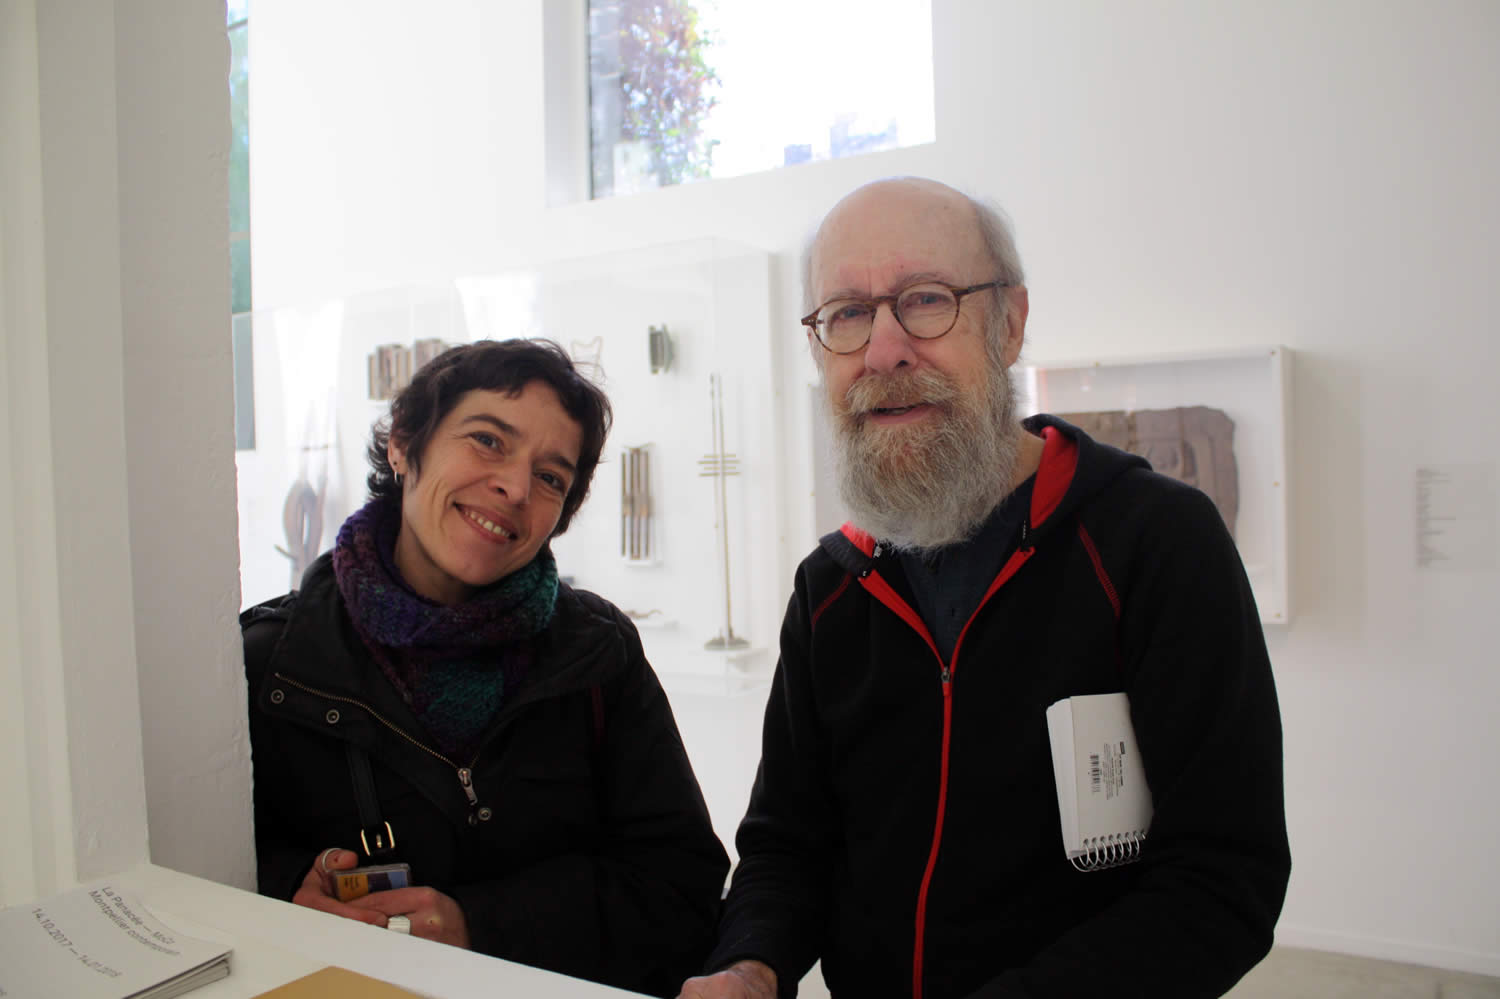 David Daly with Pauline Faure, director of the Plurivers exhibit at La Panacée